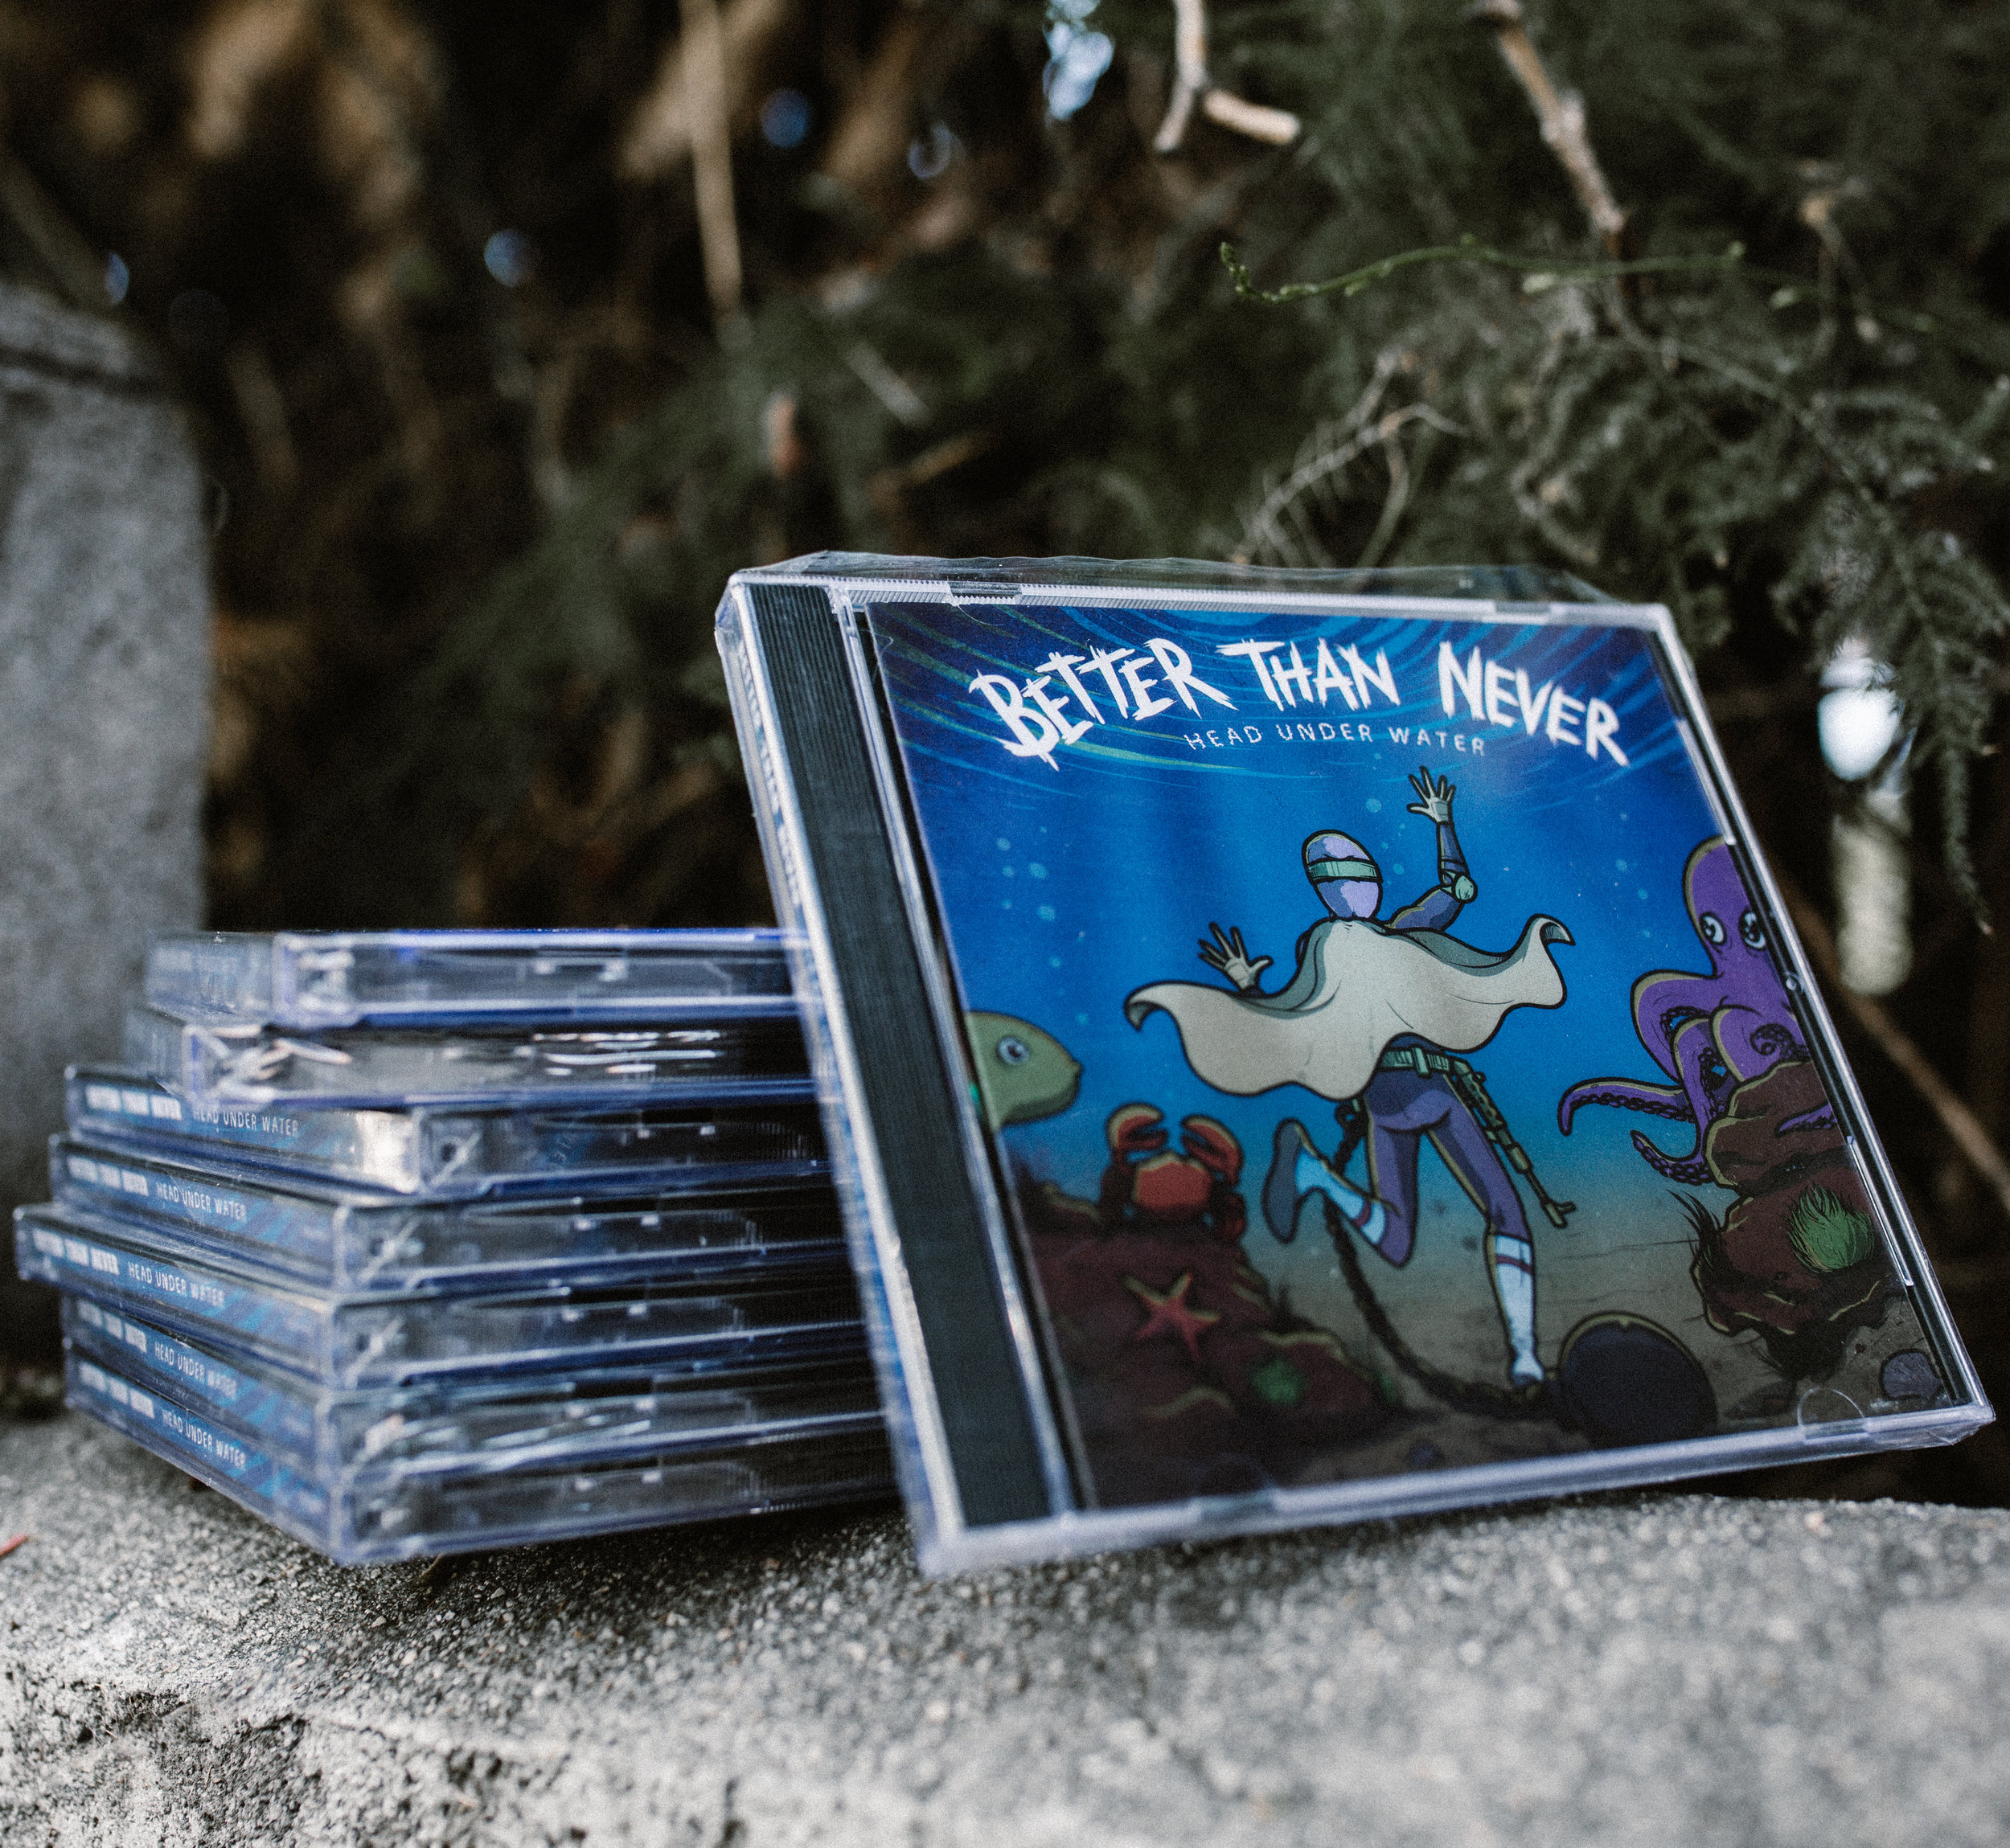 BETTER THAN NEVER 'HEAD UNDER WATER' CD - $6